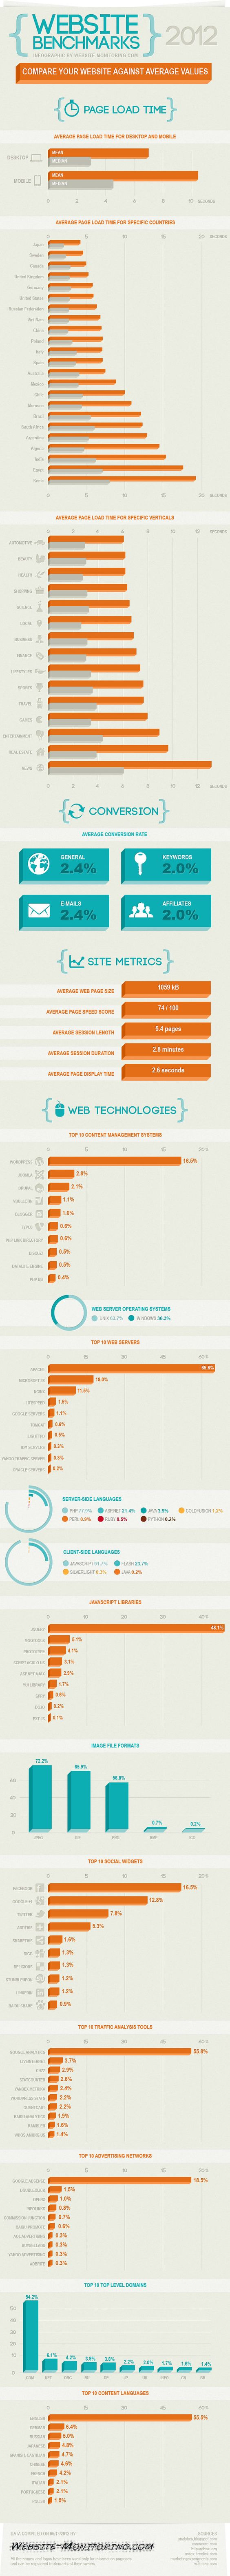 How fast is your website? Web Page Load Times by Country and Industry #Infographic #webpagespeed